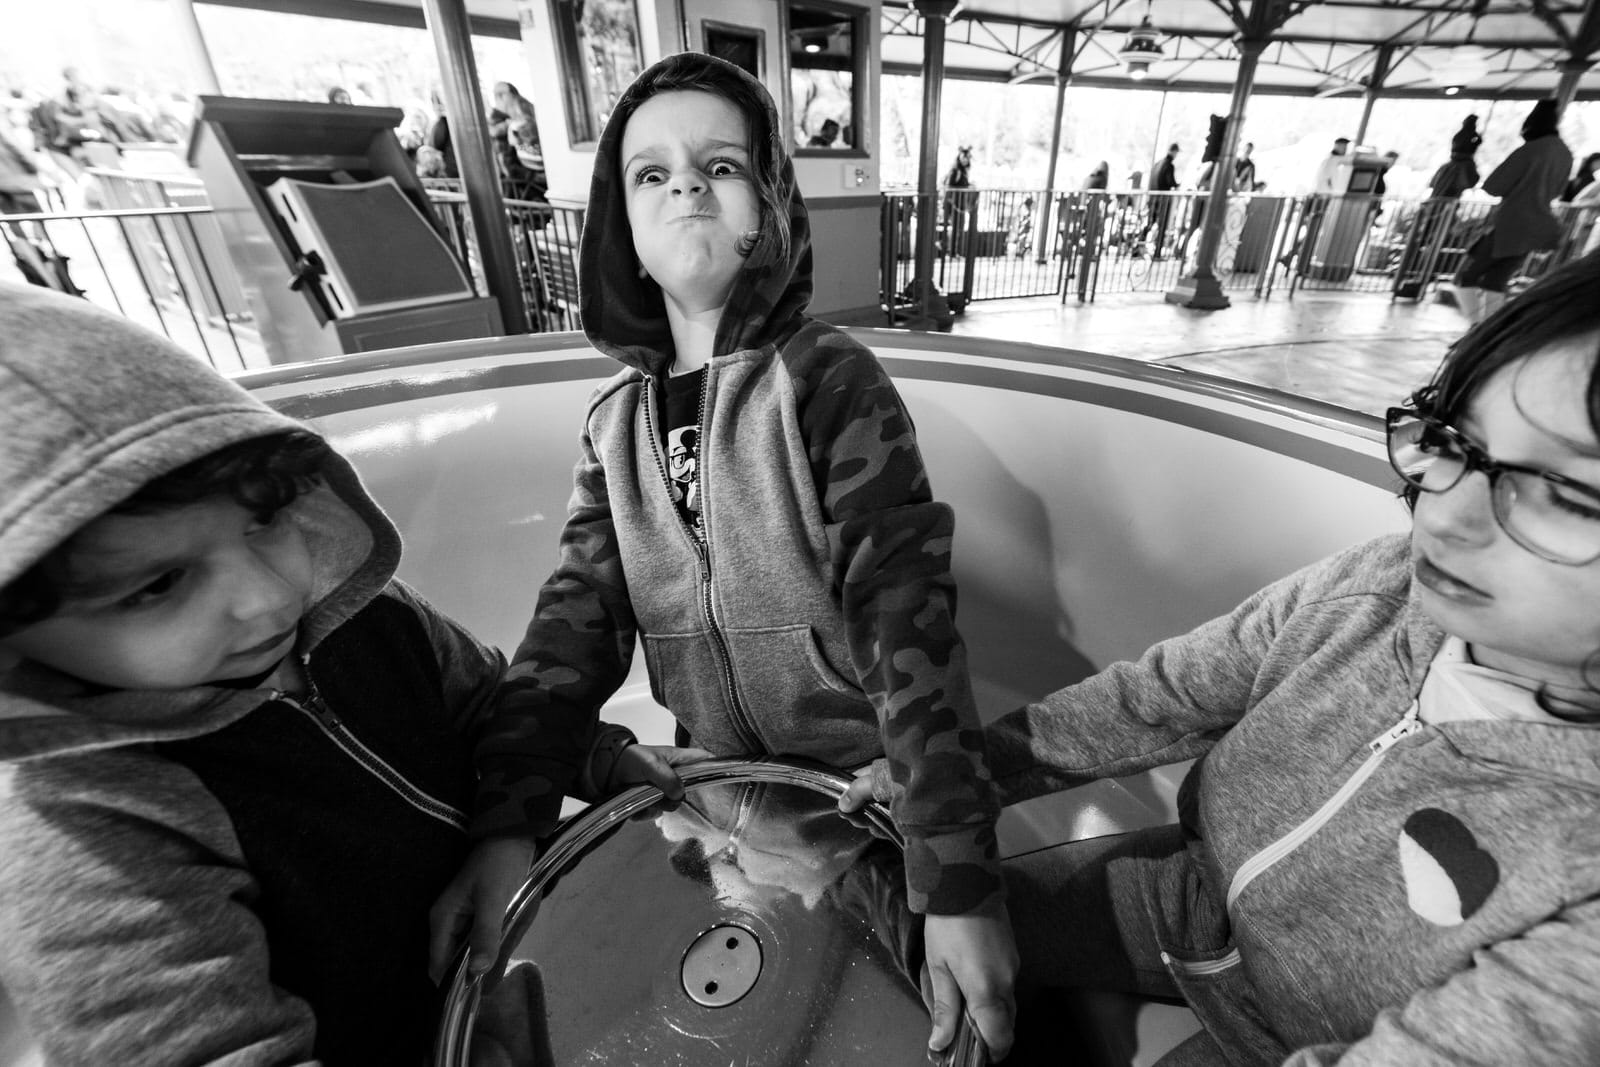 boy tries to lift wheel of the Tea Cups ride